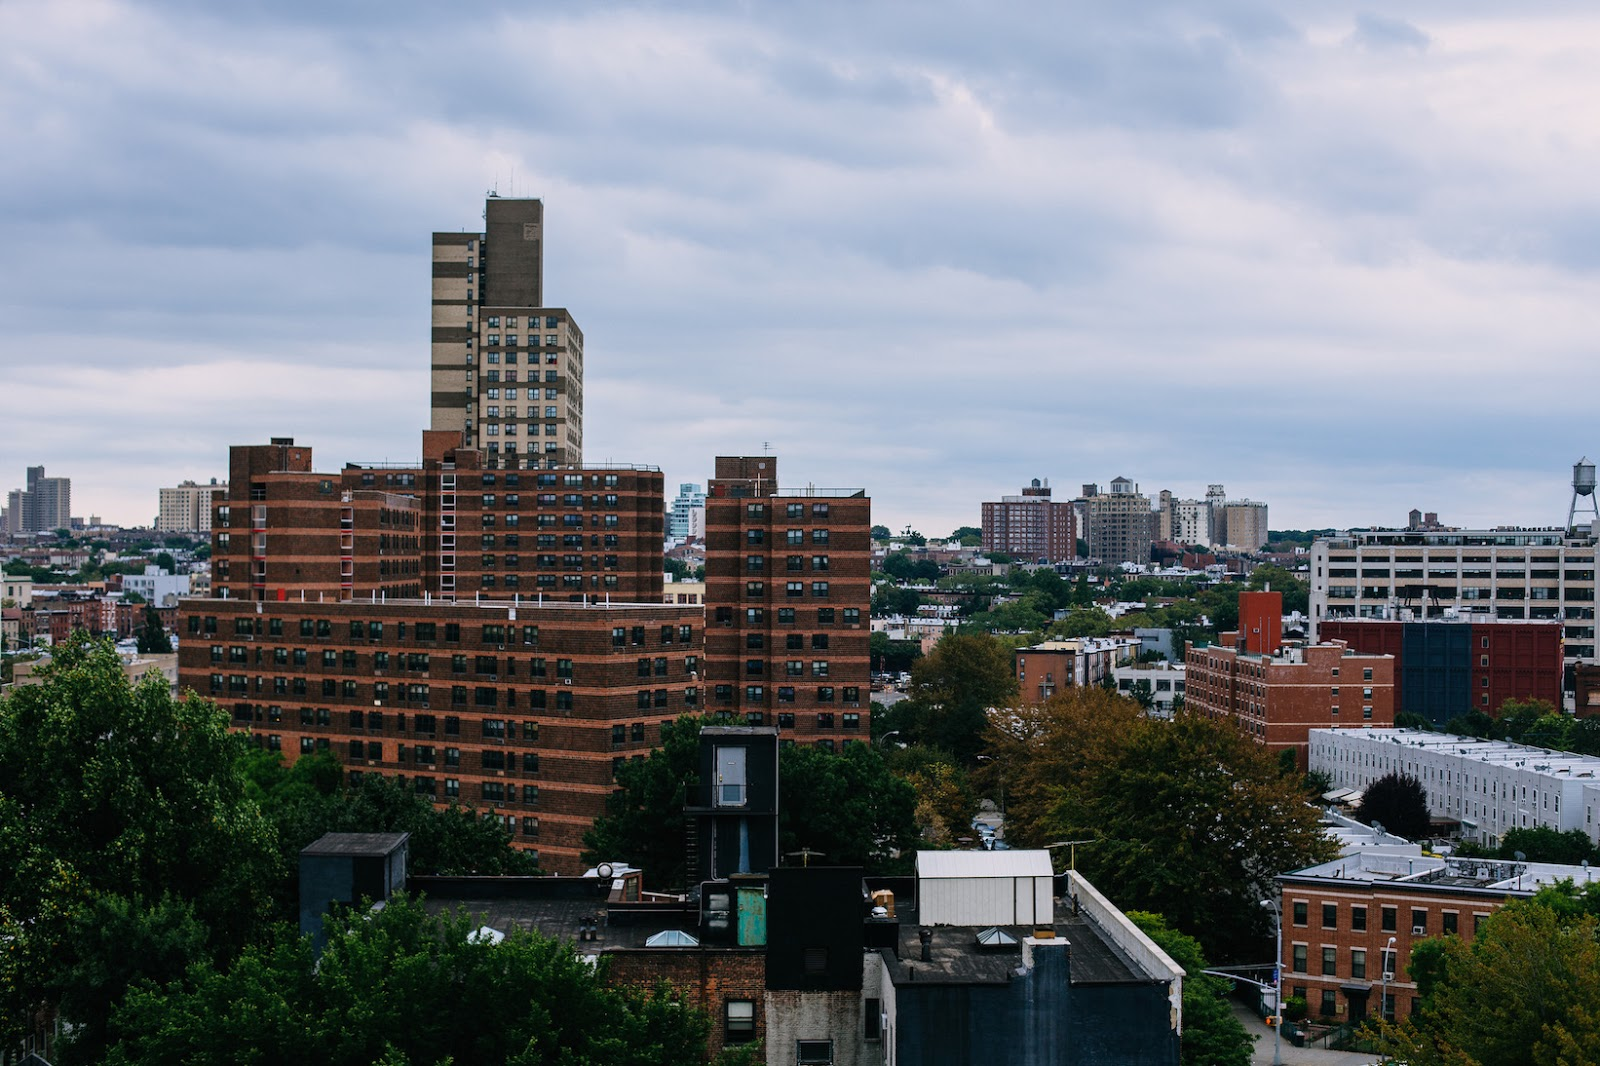 airbnb-brooklyn-fort-greene-new-york-city-14.jpg